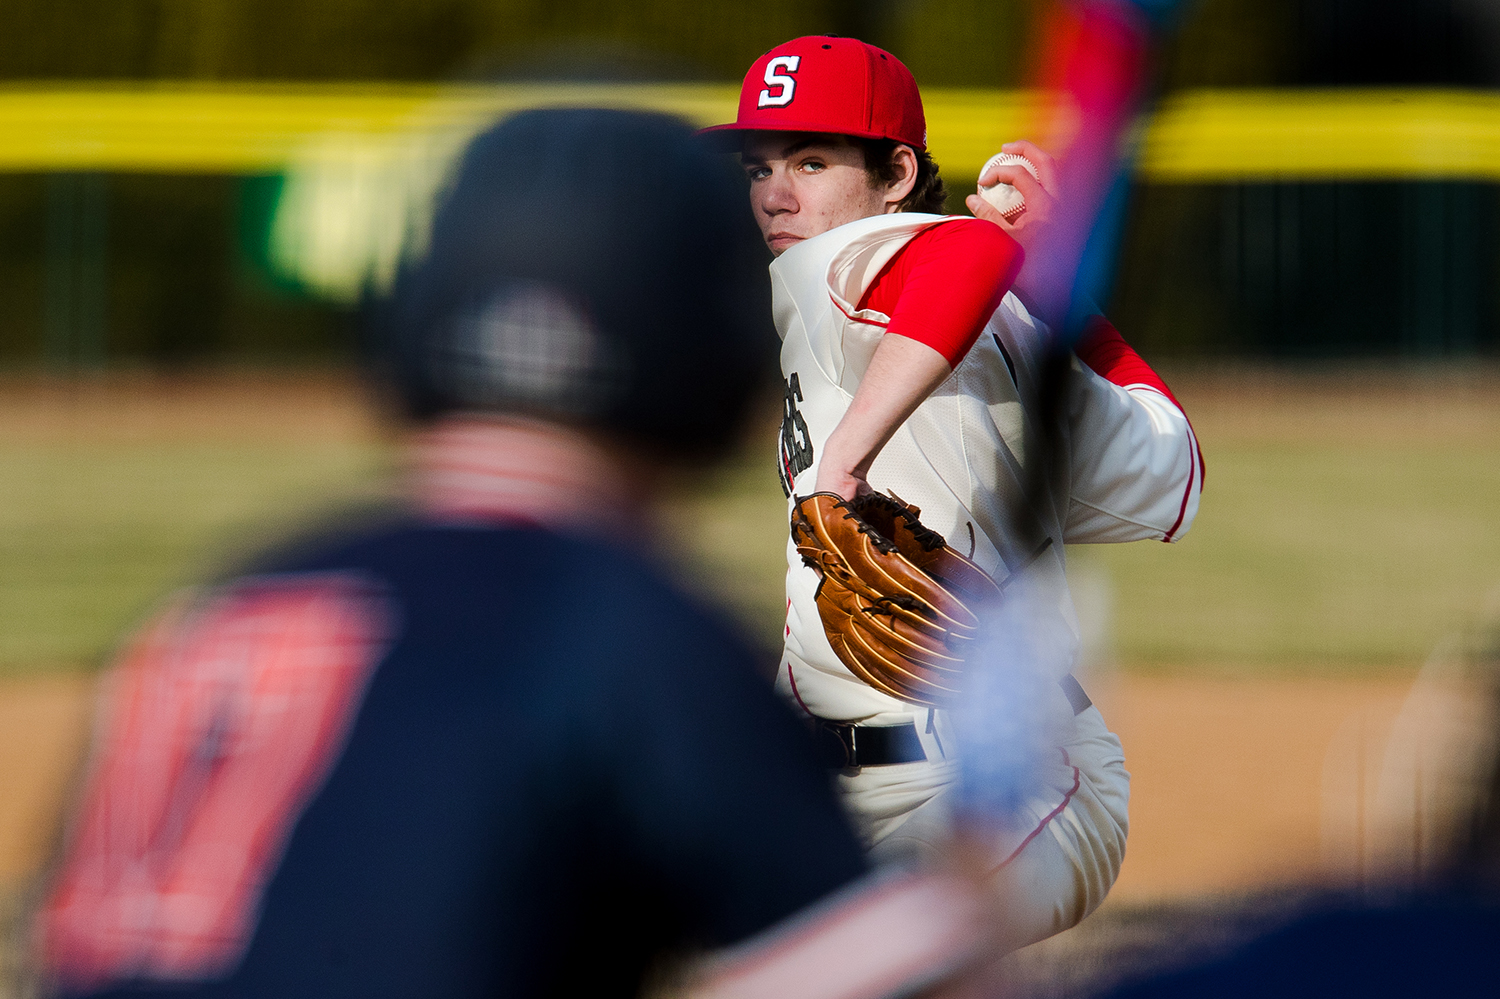 Springfield's Adam Passmore delivers a pitch to Rochester at Robin Roberts Stadium Wednesday, March 27, 2019. [Ted Schurter/The State Journal-Register]